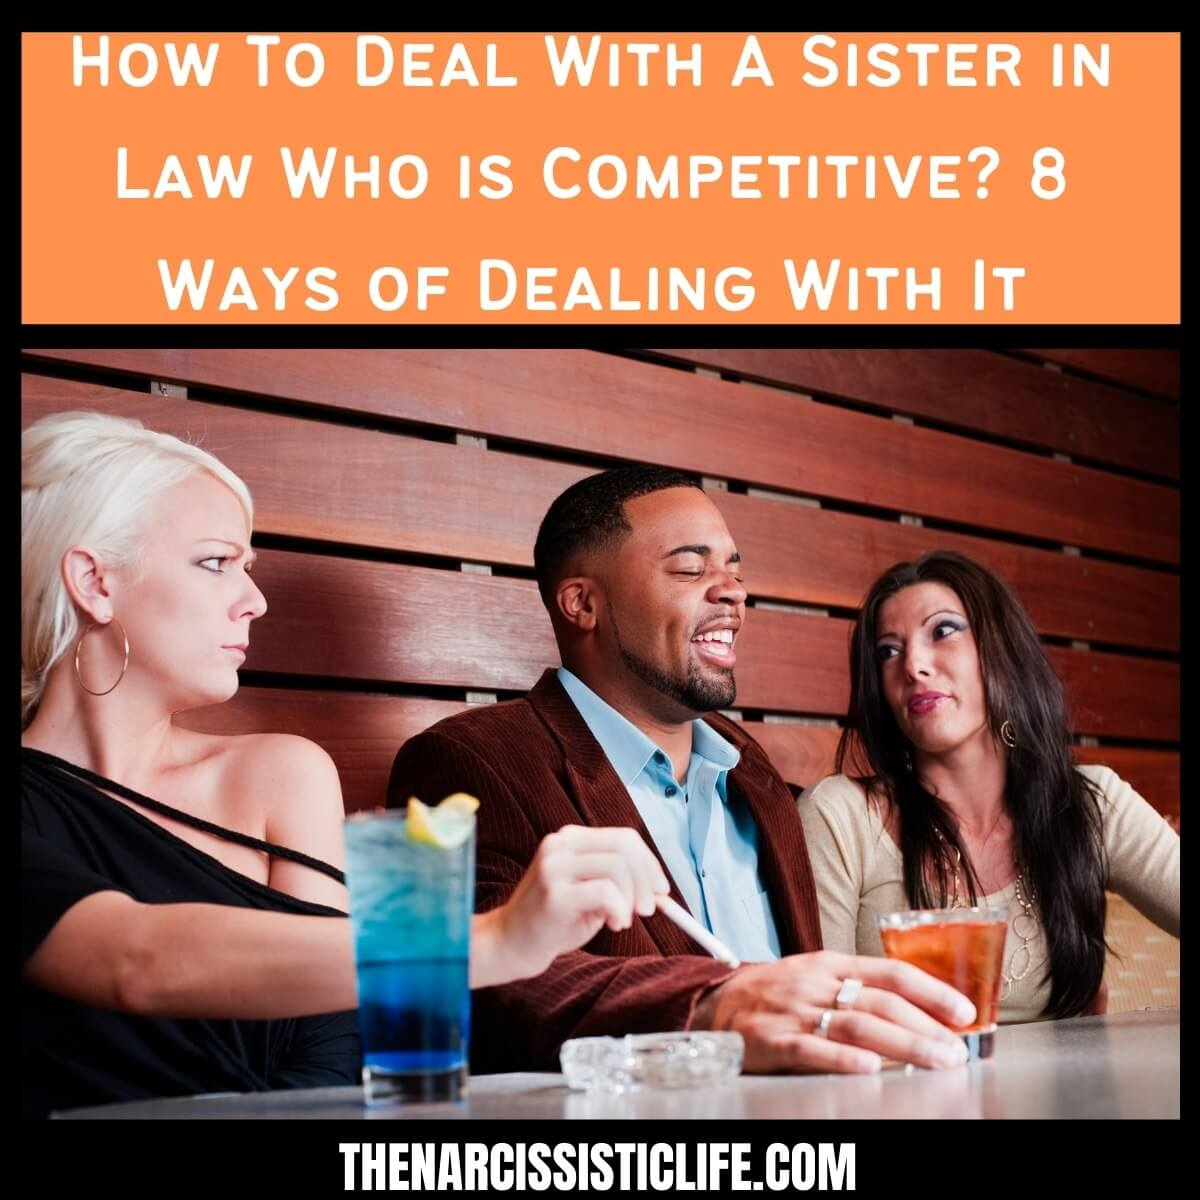 How To Deal With A Sister in Law Who is Competitive?